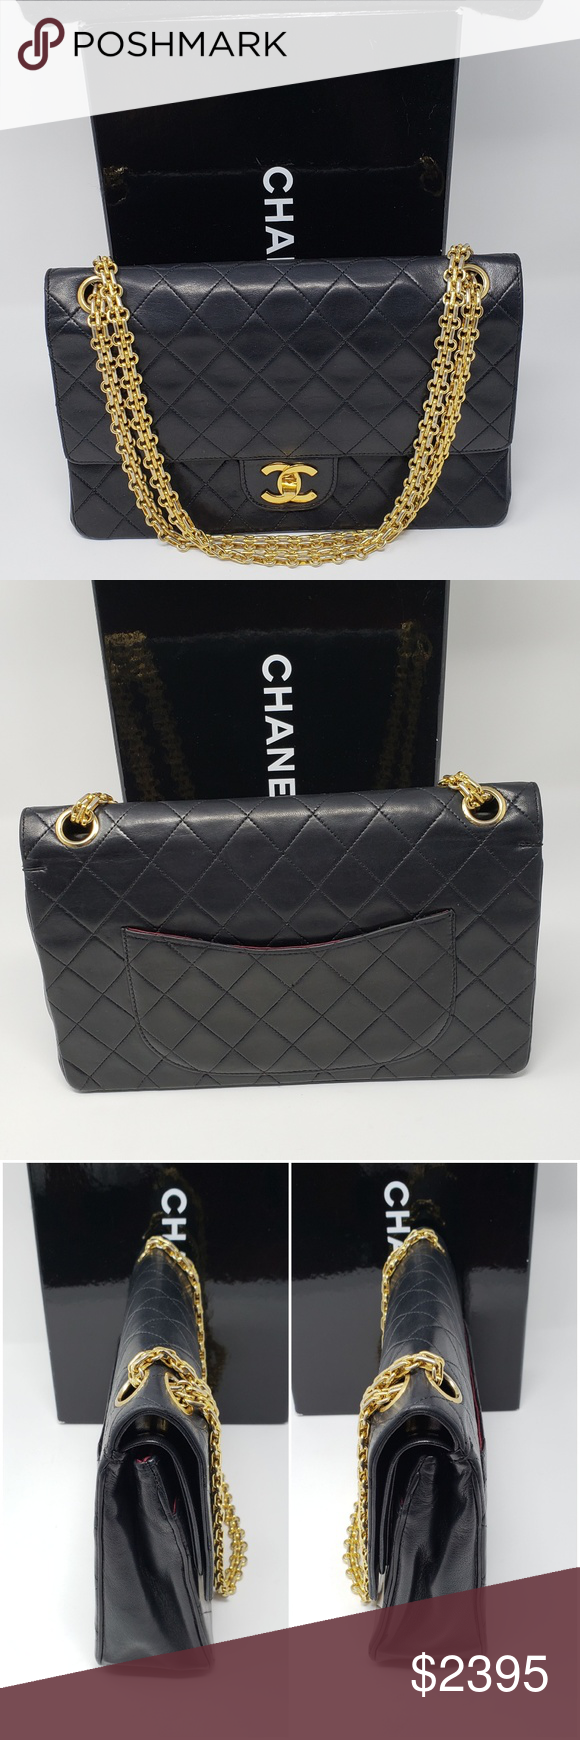 5a21ed2ff786 100% Auth Vintage CHANEL Shoulder Bag Pre-owned. Overall condition is  excellent.